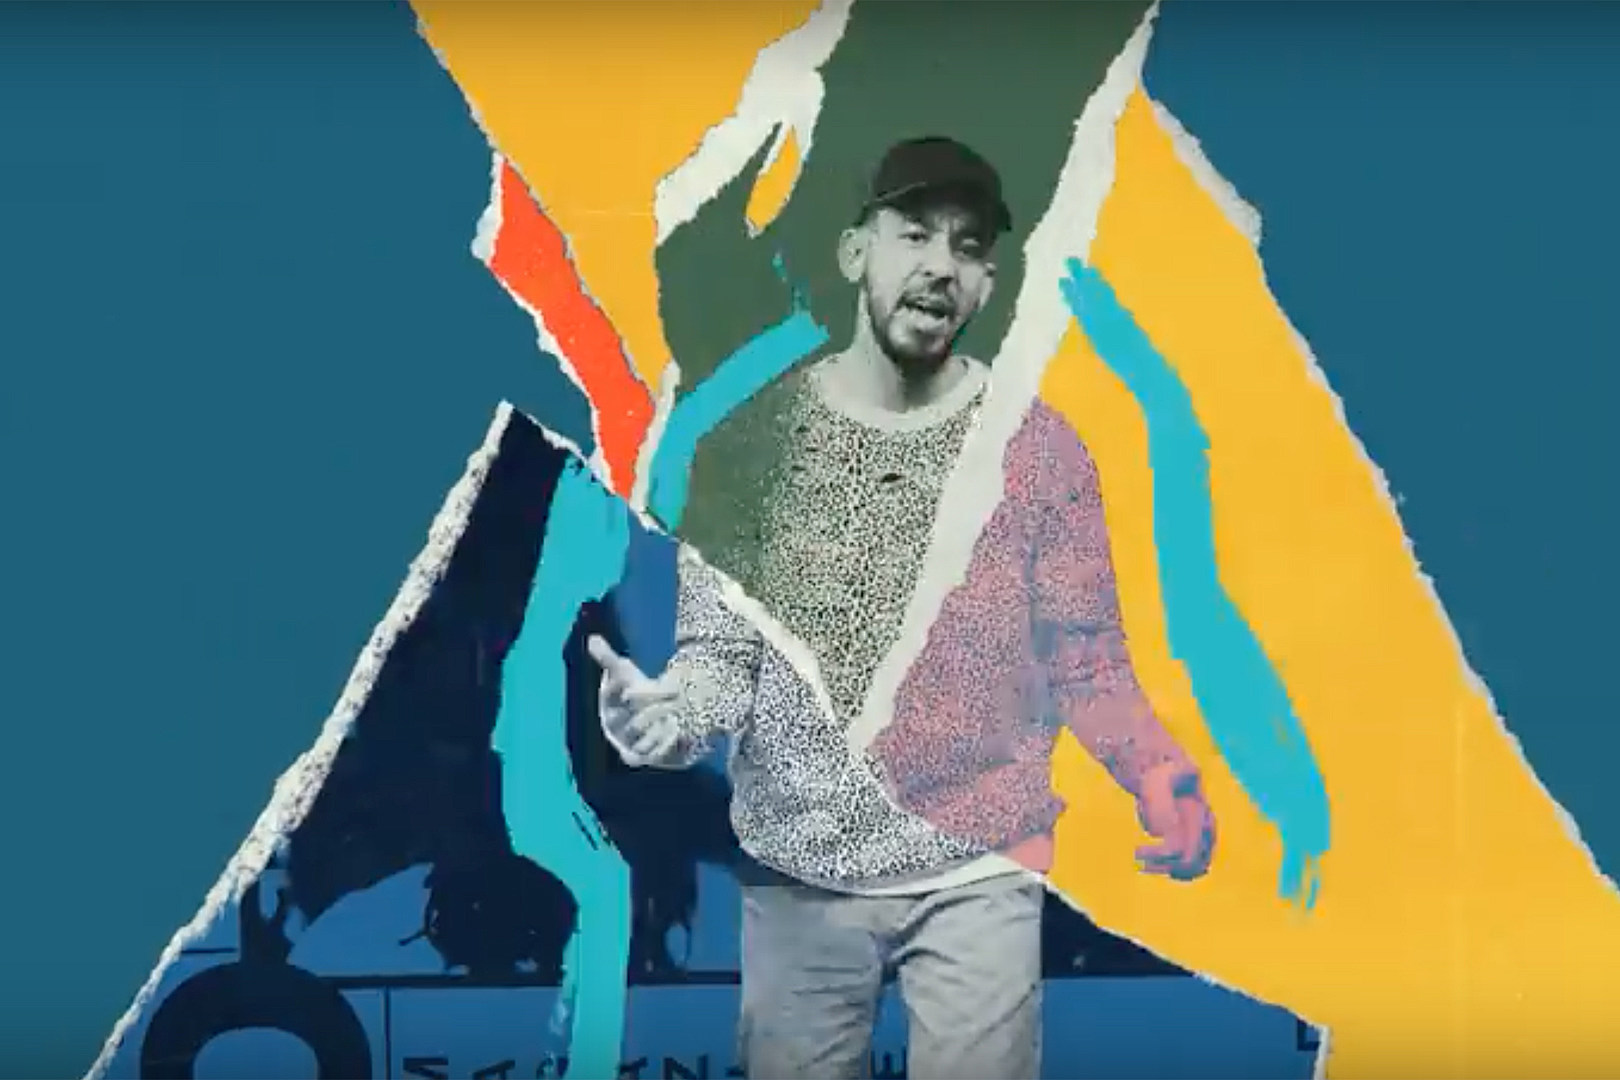 Mike Shinoda + K. Flay Piece Together Doomed Relationship in 'Make It Up as I Go' Video